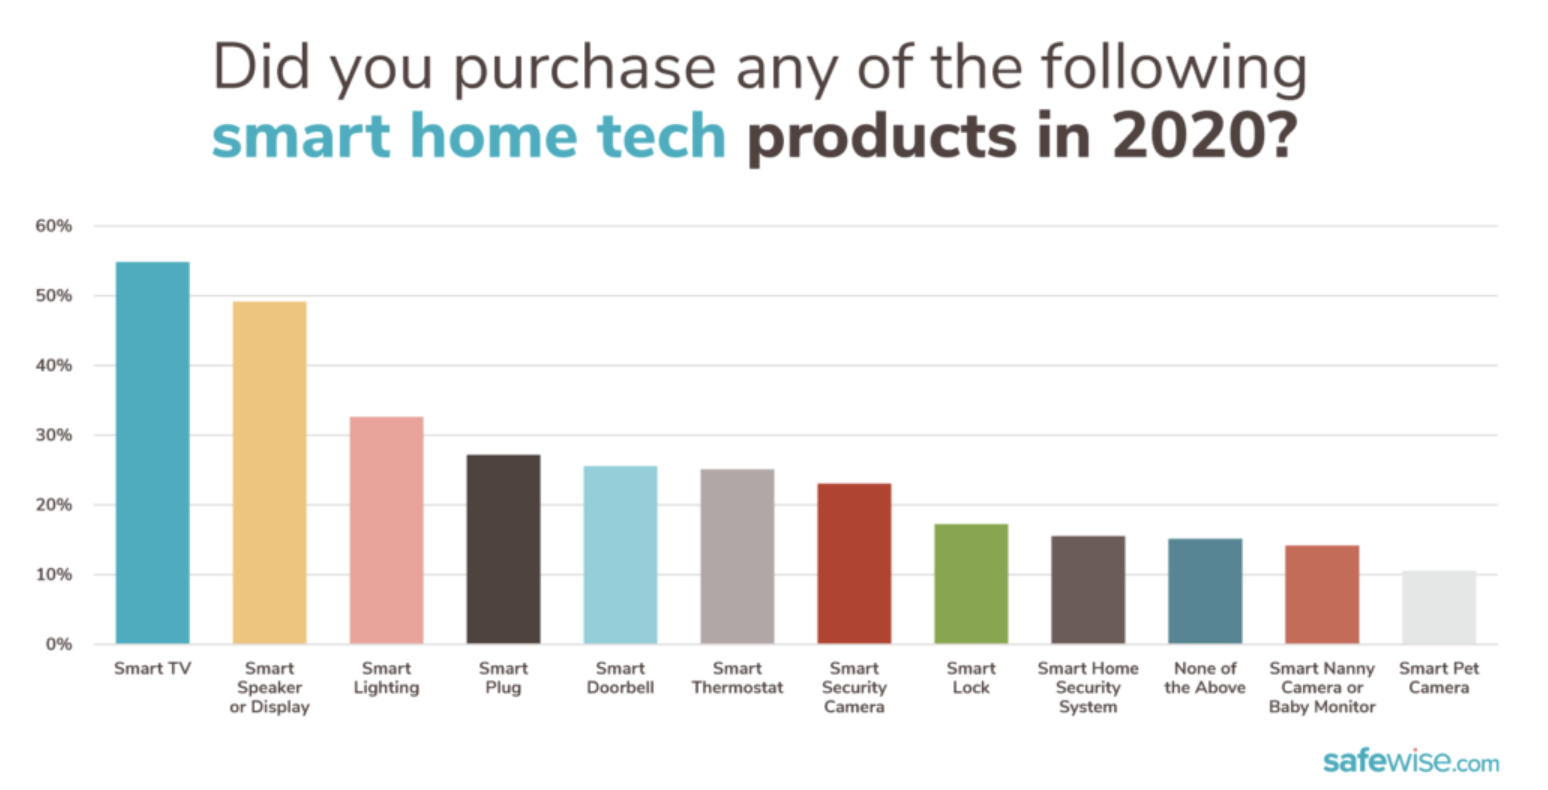 A chart showing results of the survey about which smart home tech products people bought in 2020